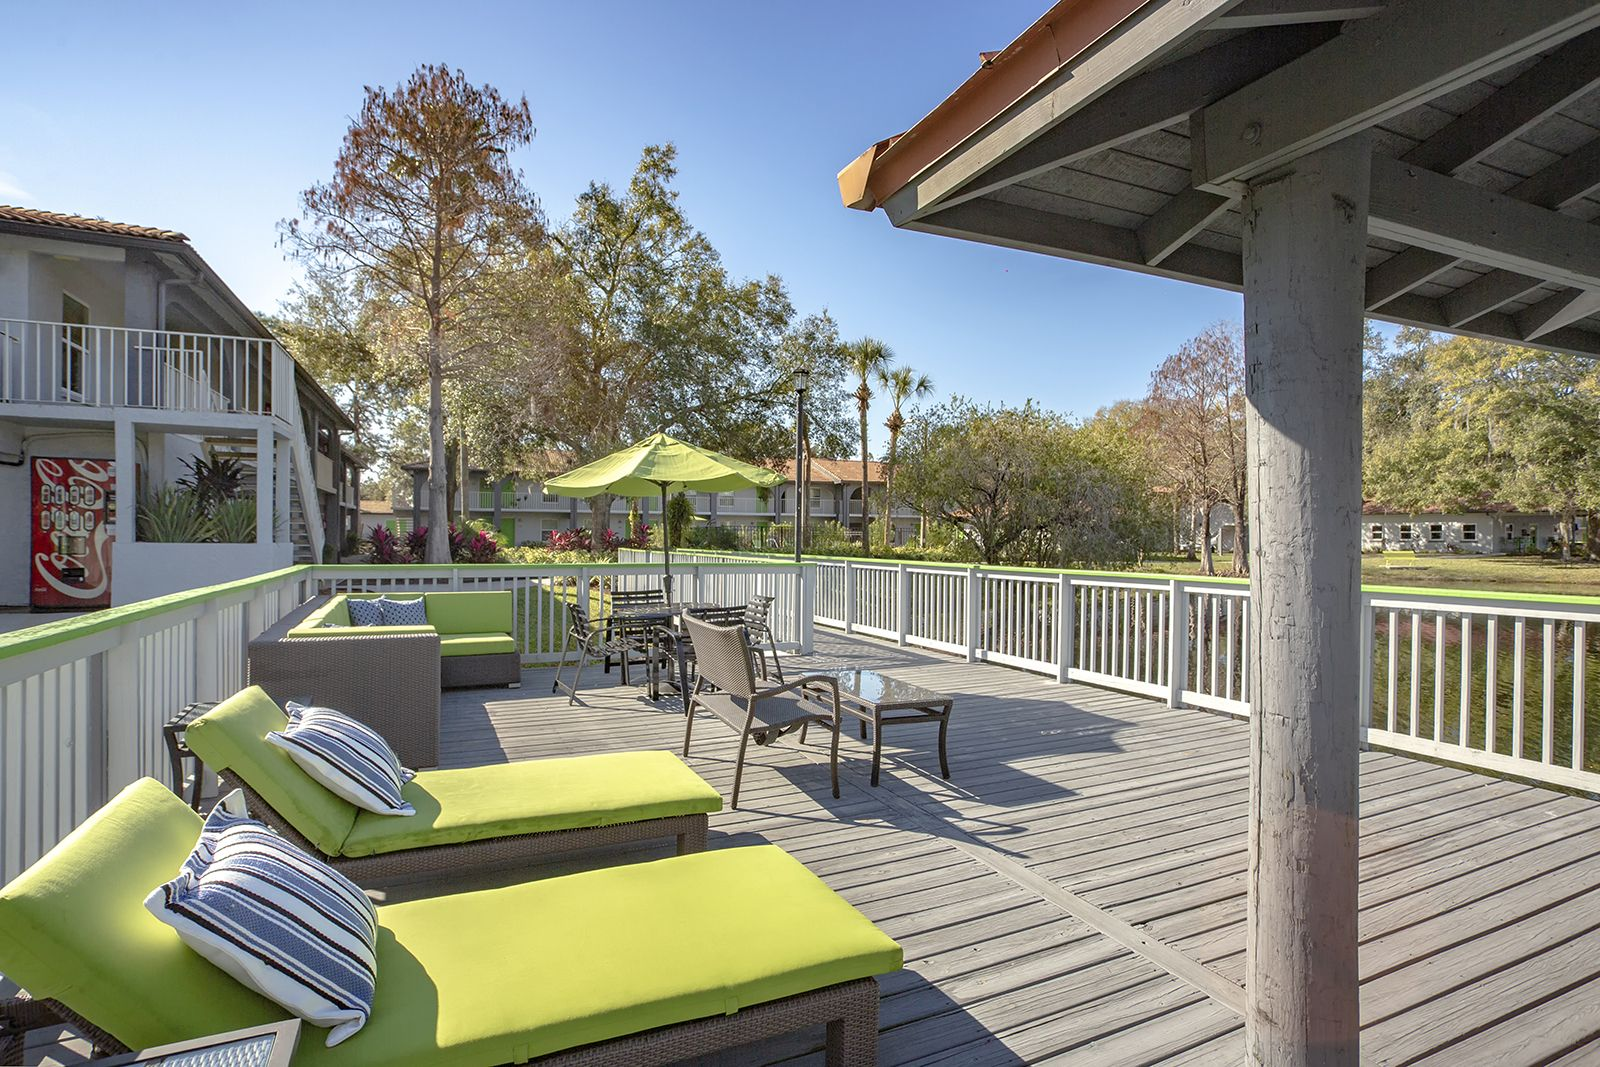 Soak Up The Sun On Our Sundeck Overlooking The Beautiful Lake Ulake Tampa Fl Studentliving Apartments My Outdoor Furniture Sets Apartment Student Living